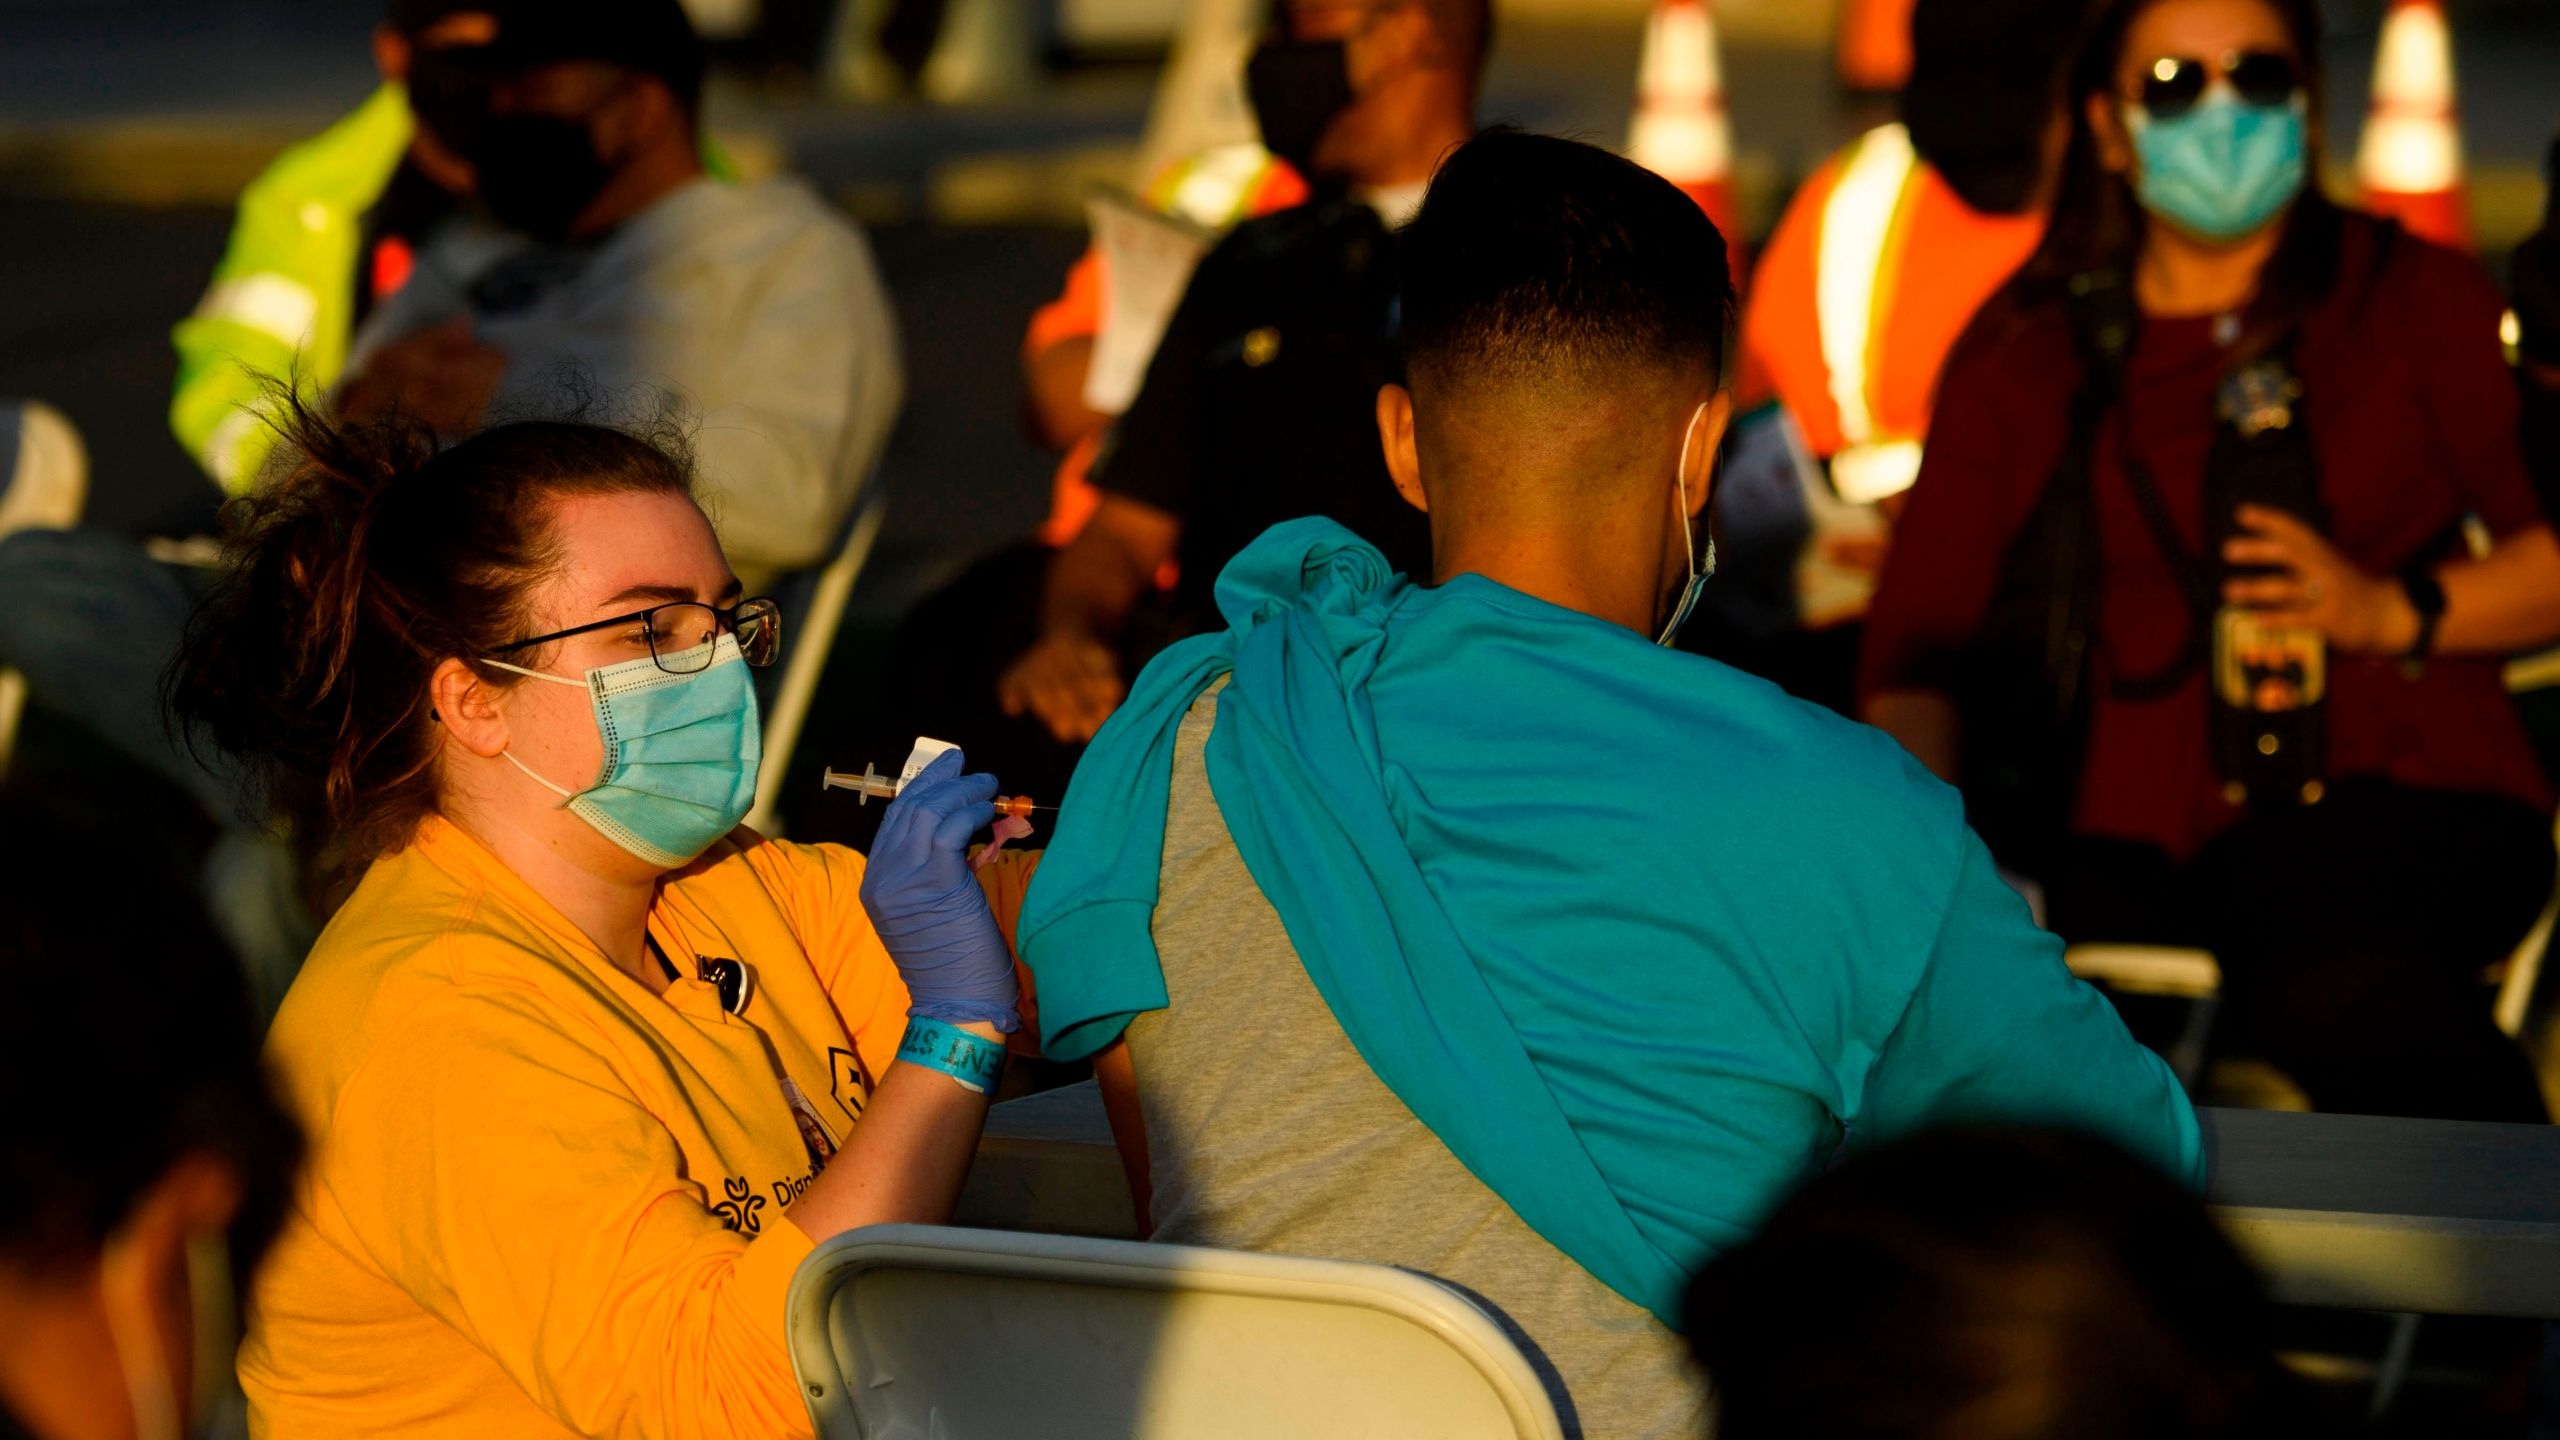 A nurse administers a dose of the Moderna COVID-19 vaccine at a vaccination site at Dignity Health Sports Park on Feb. 6, 2021, in Carson, California. (PATRICK T. FALLON/AFP via Getty Images)